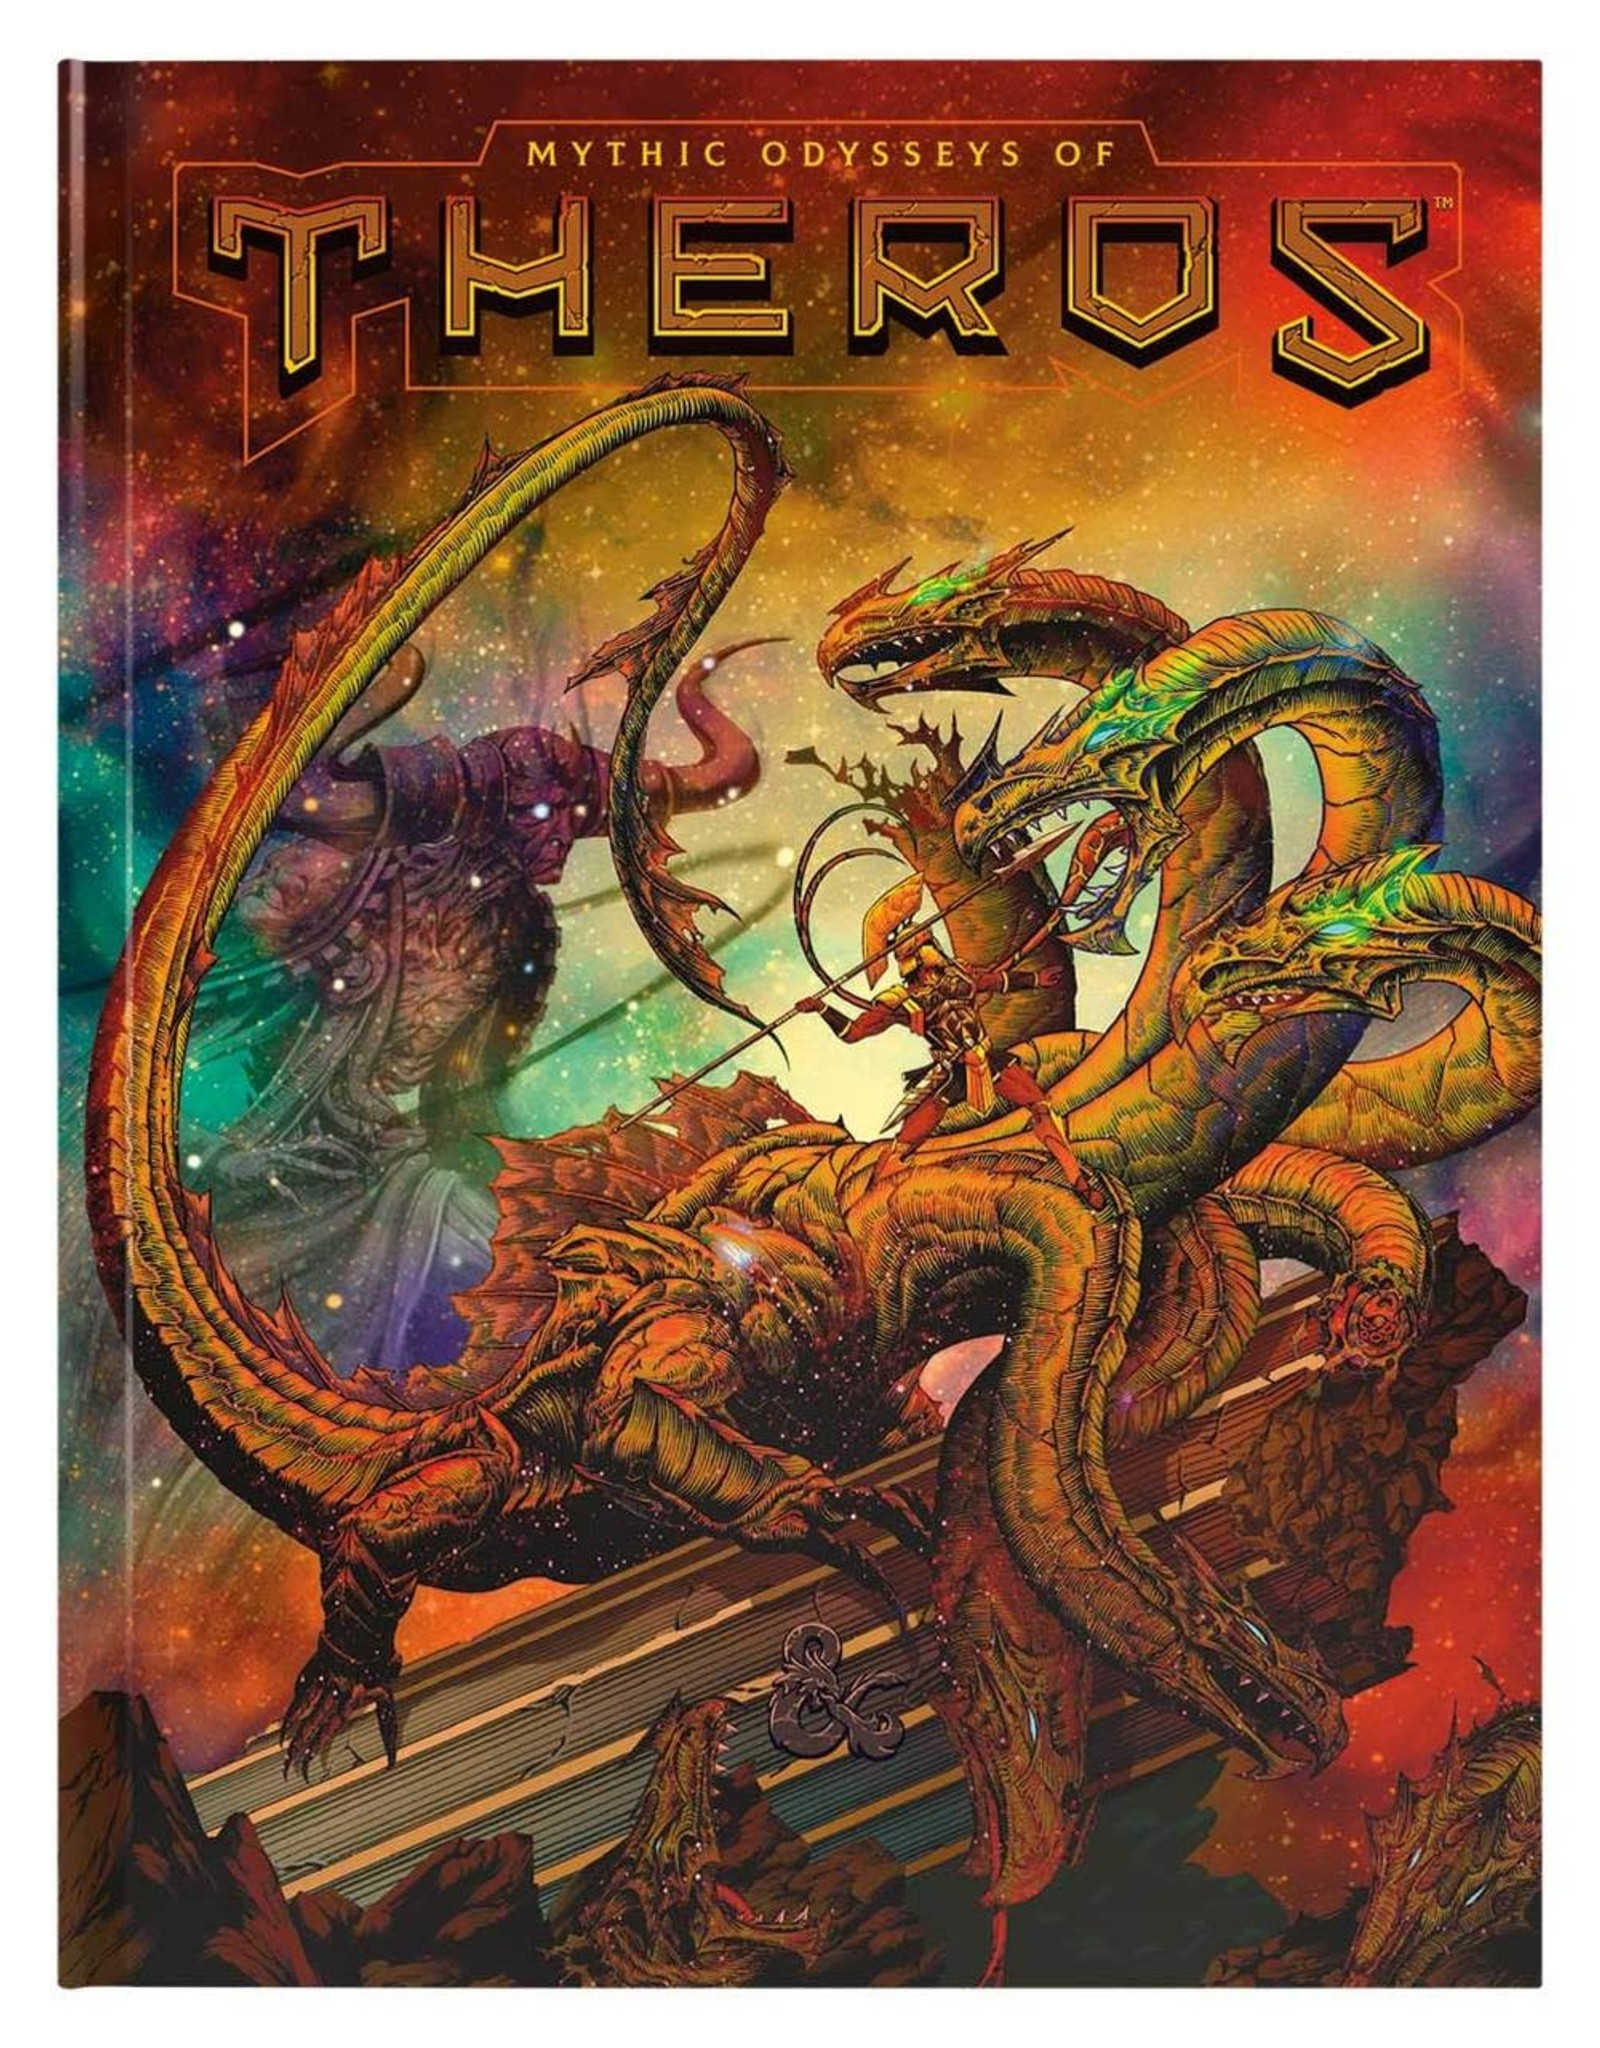 WIZARDS OF THE COAST D&D RPG MYTHIC ODYSSEYS OF THEROS EXCLUSIVE ALTERNATE COVER PREORDER